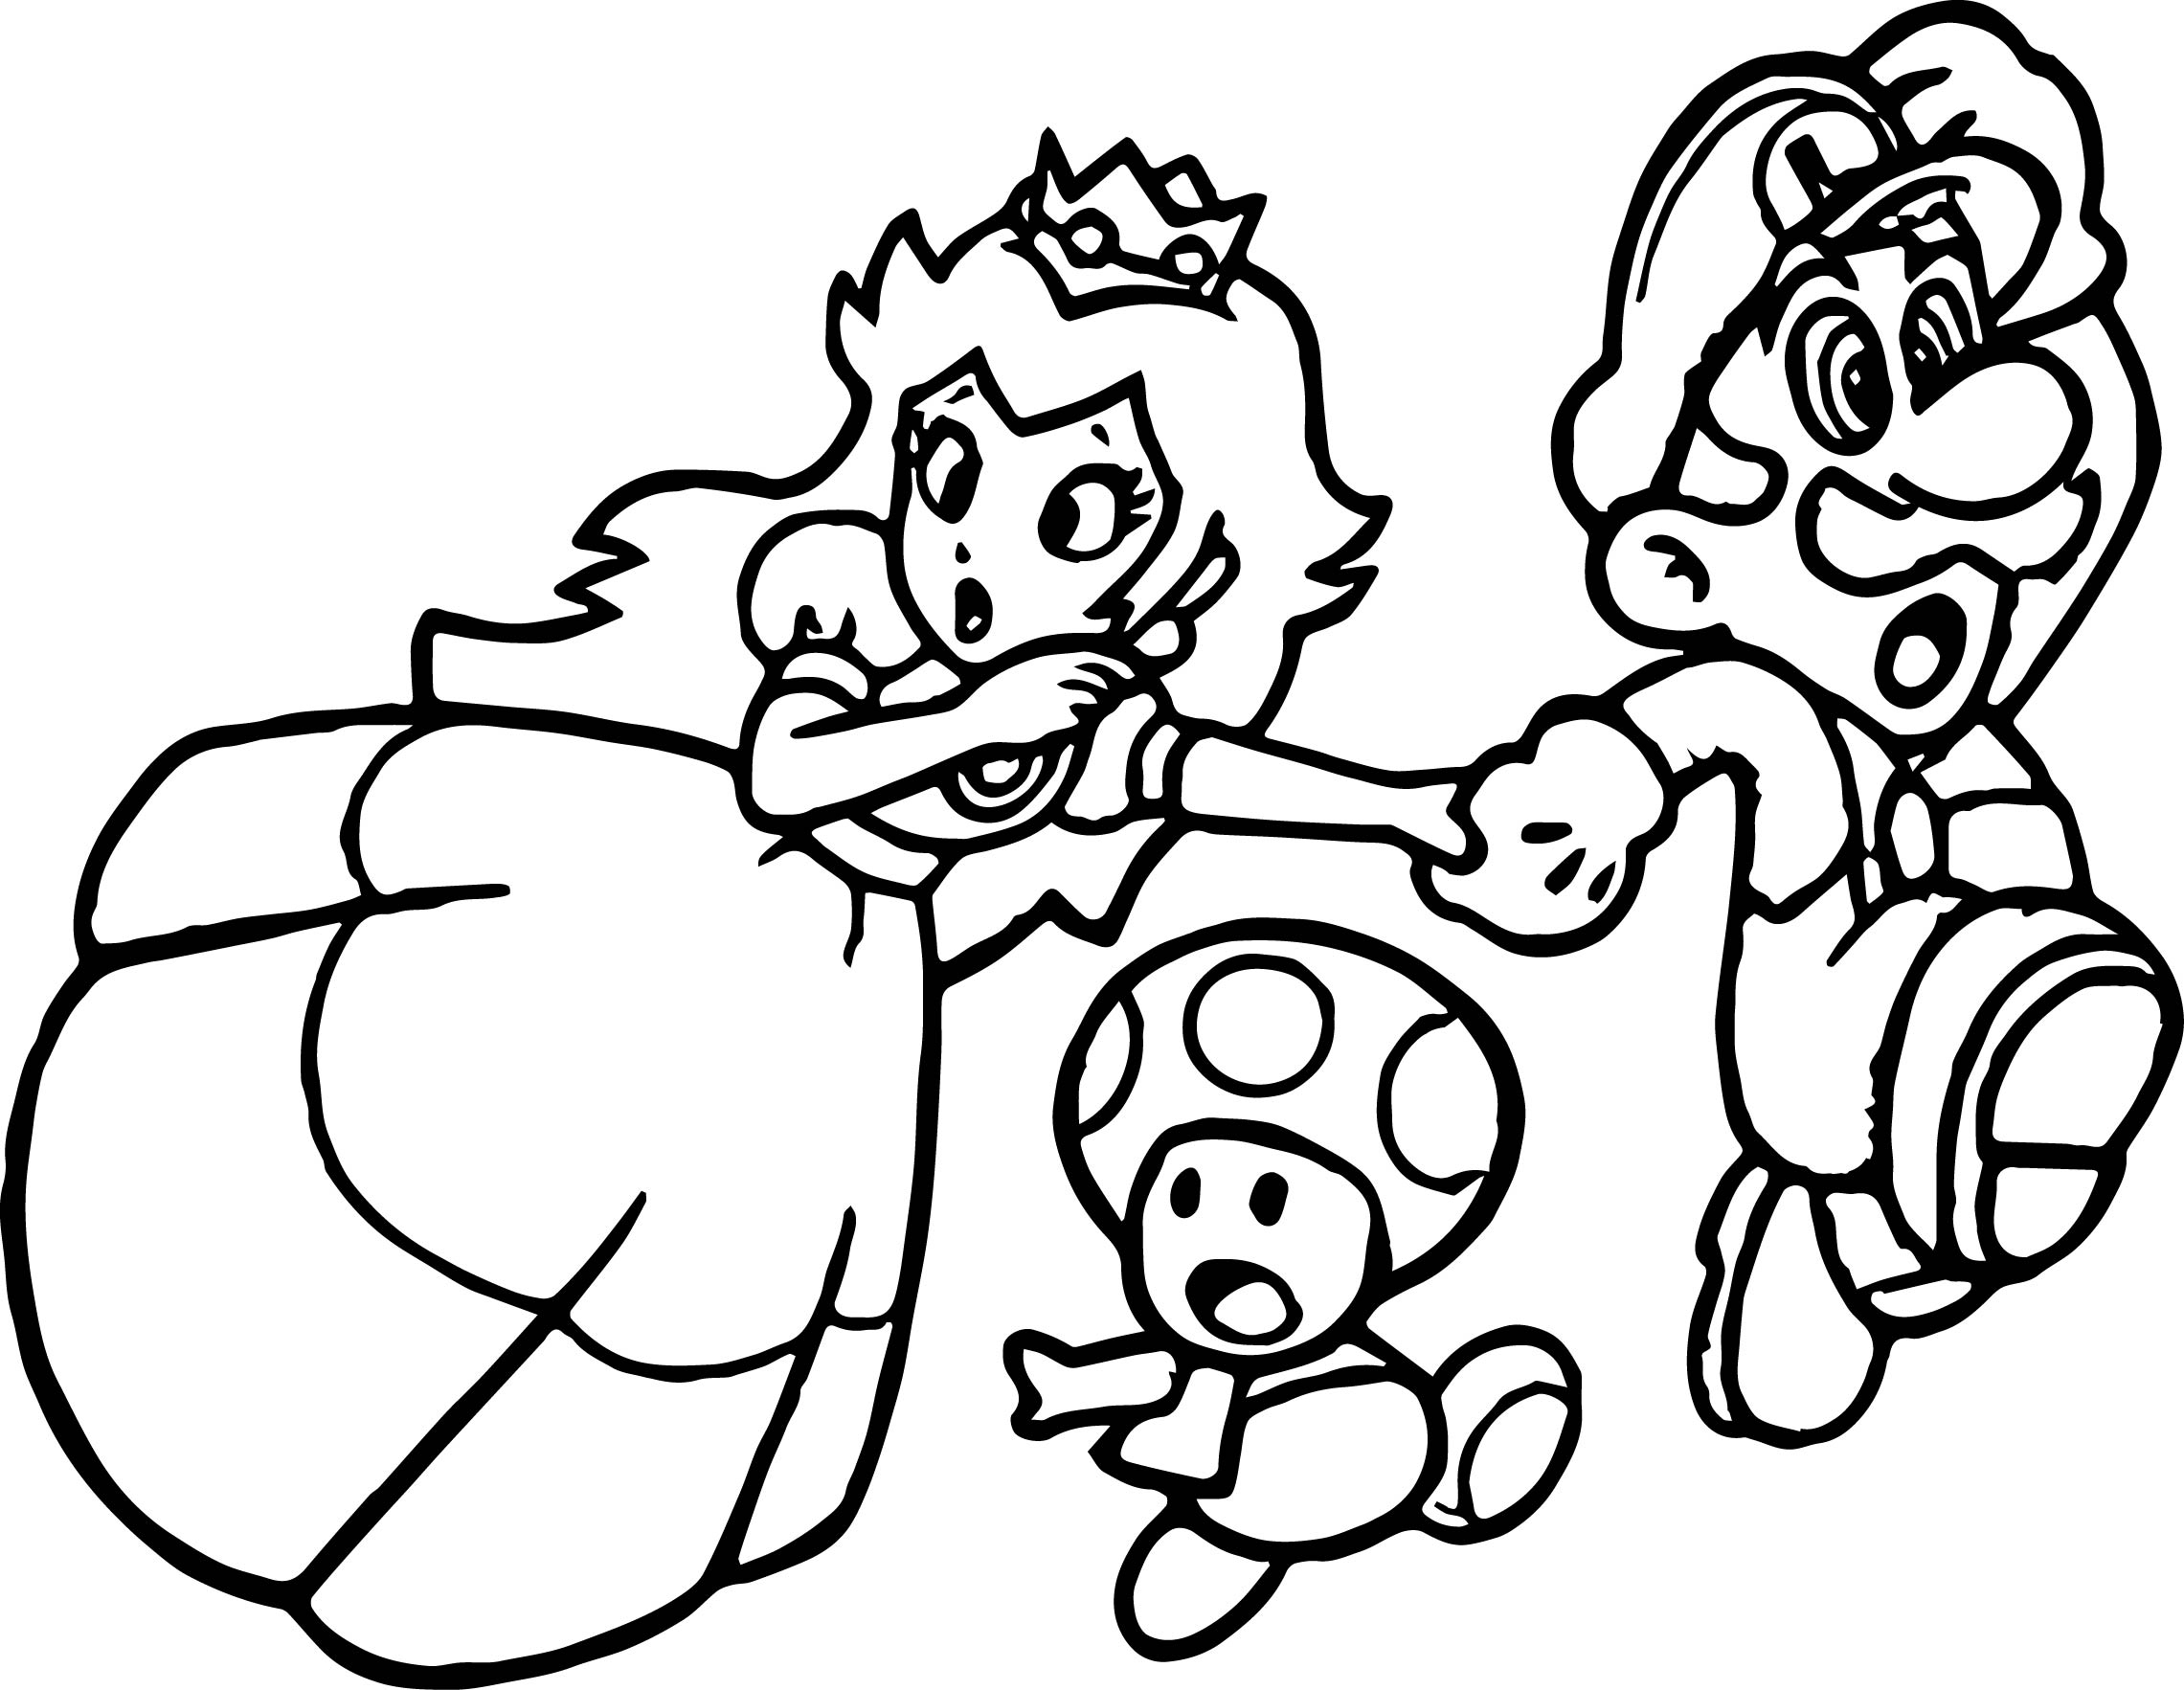 mario coloring free printable mario brothers coloring pages for kids coloring mario